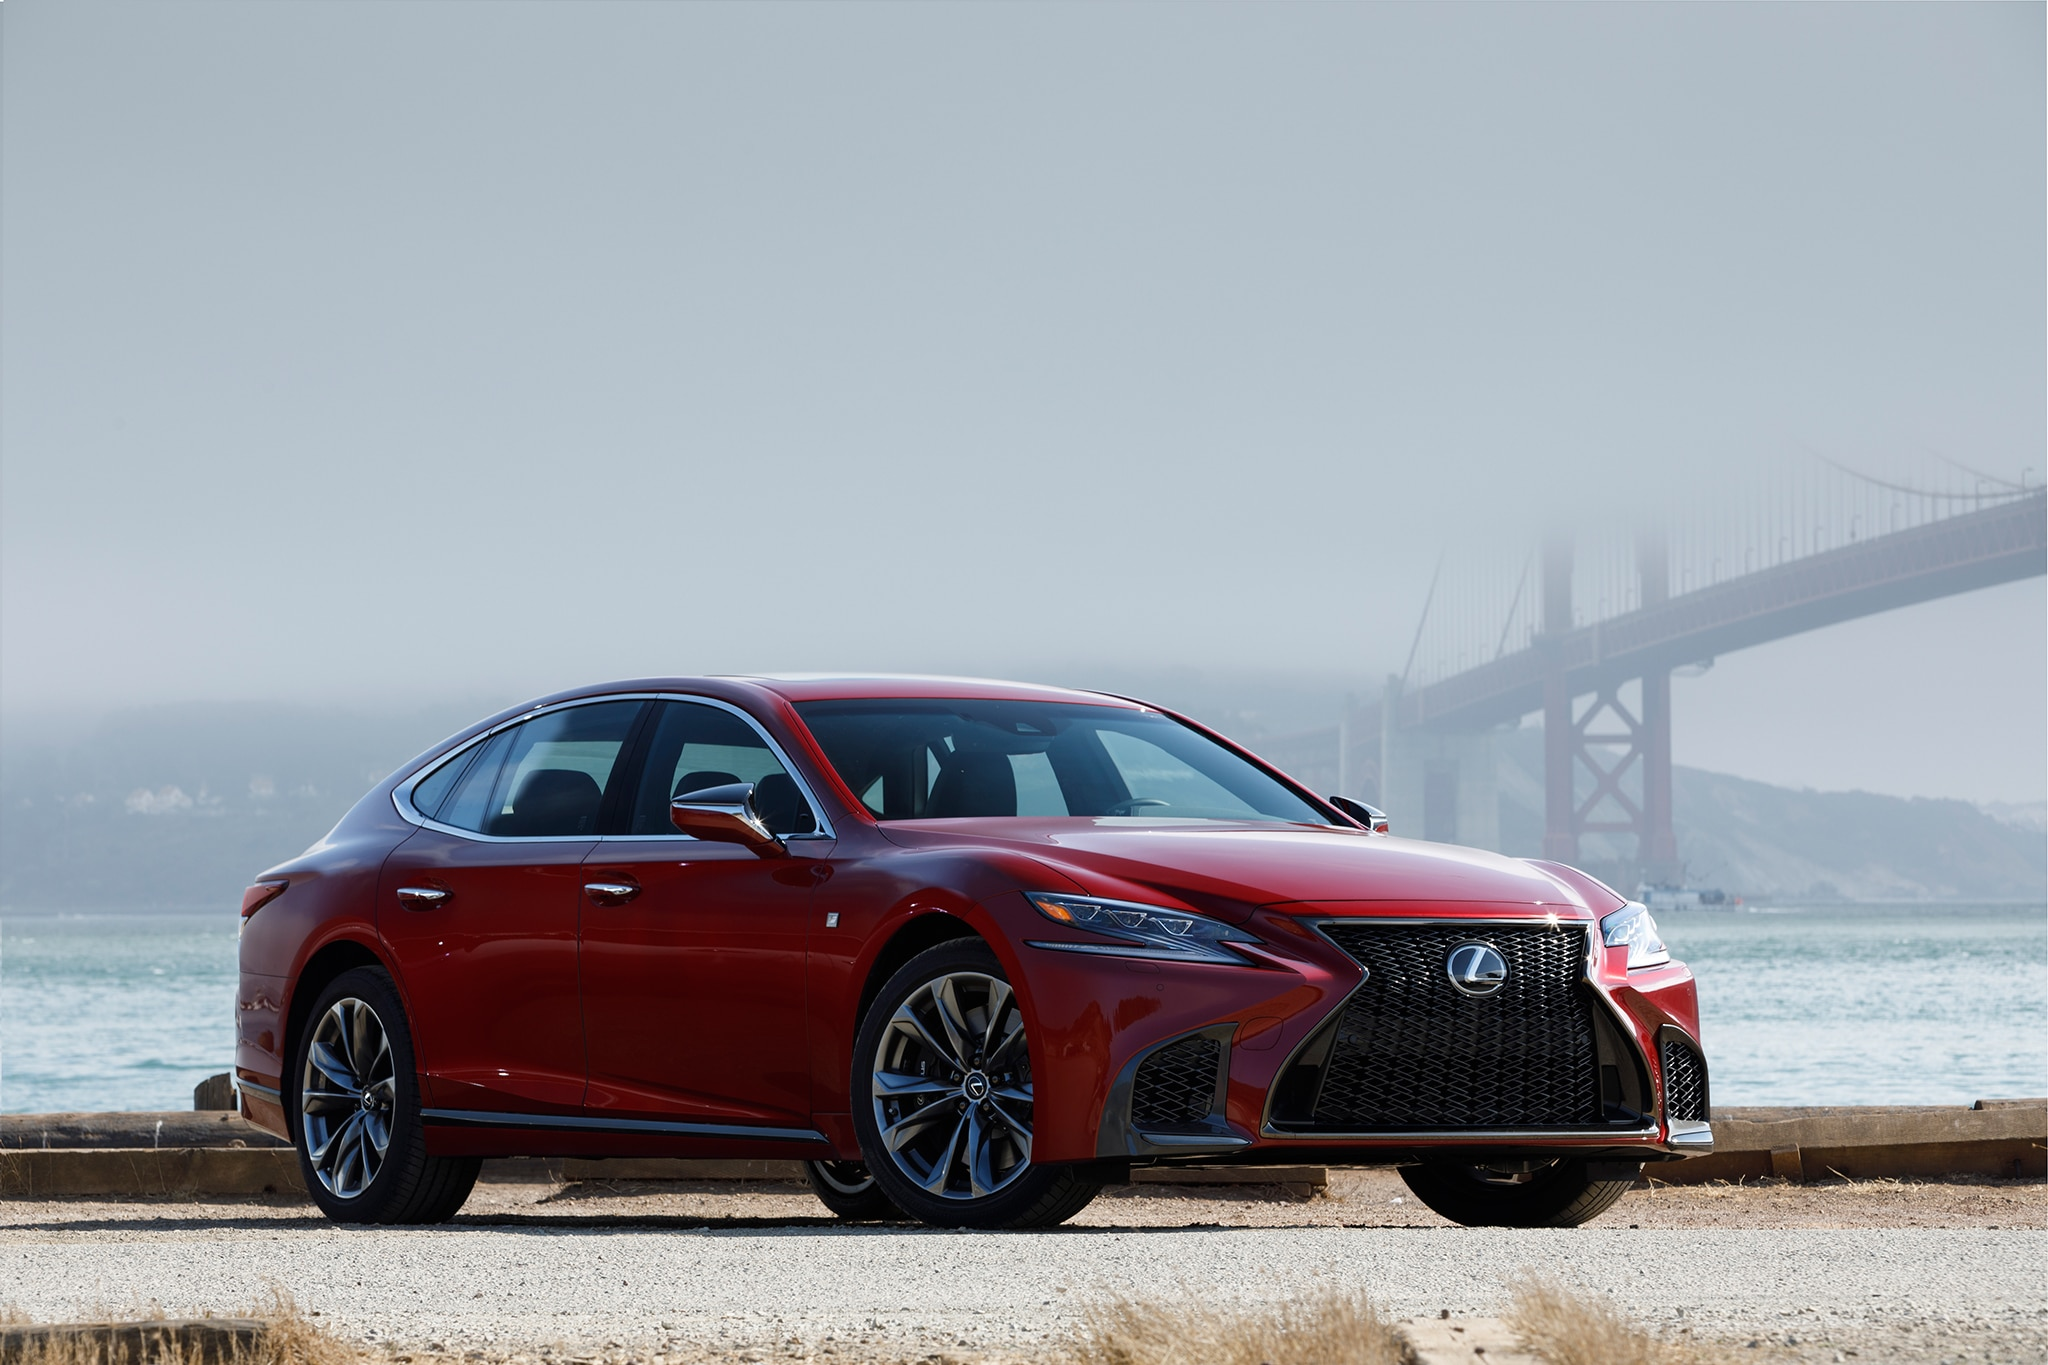 2018 lexus sedan. interesting sedan 17173 and 2018 lexus sedan